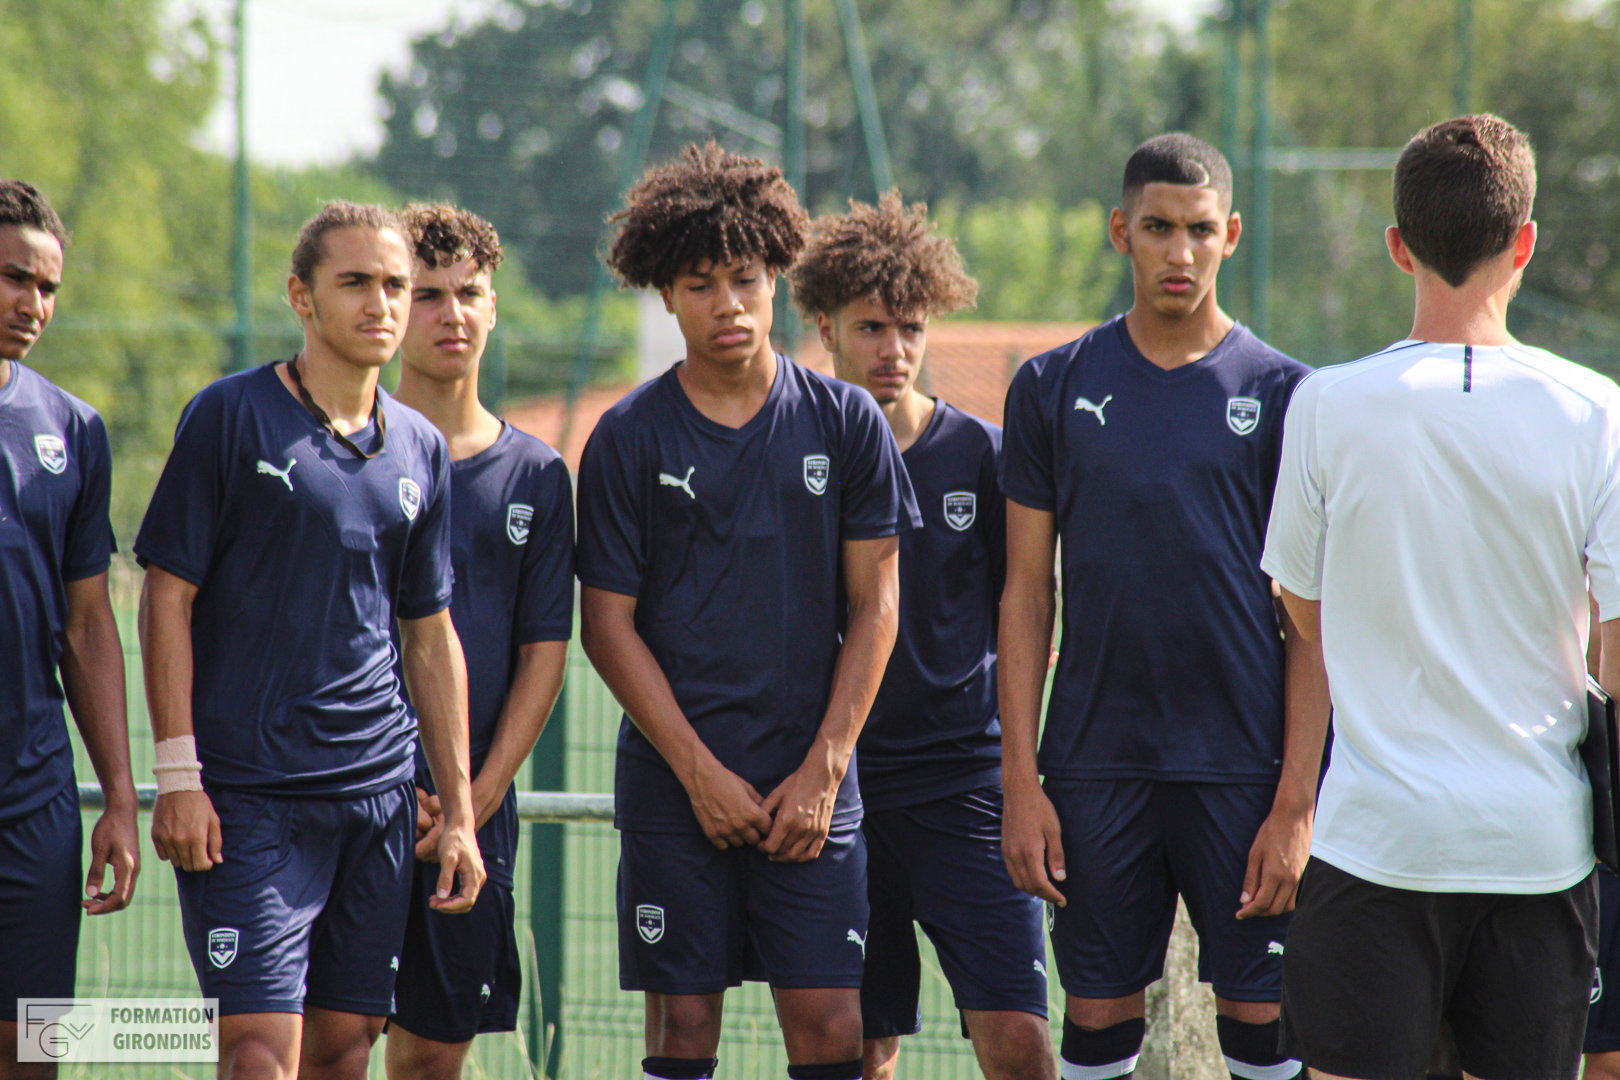 Cfa Girondins : Premier match amical demain - Formation Girondins